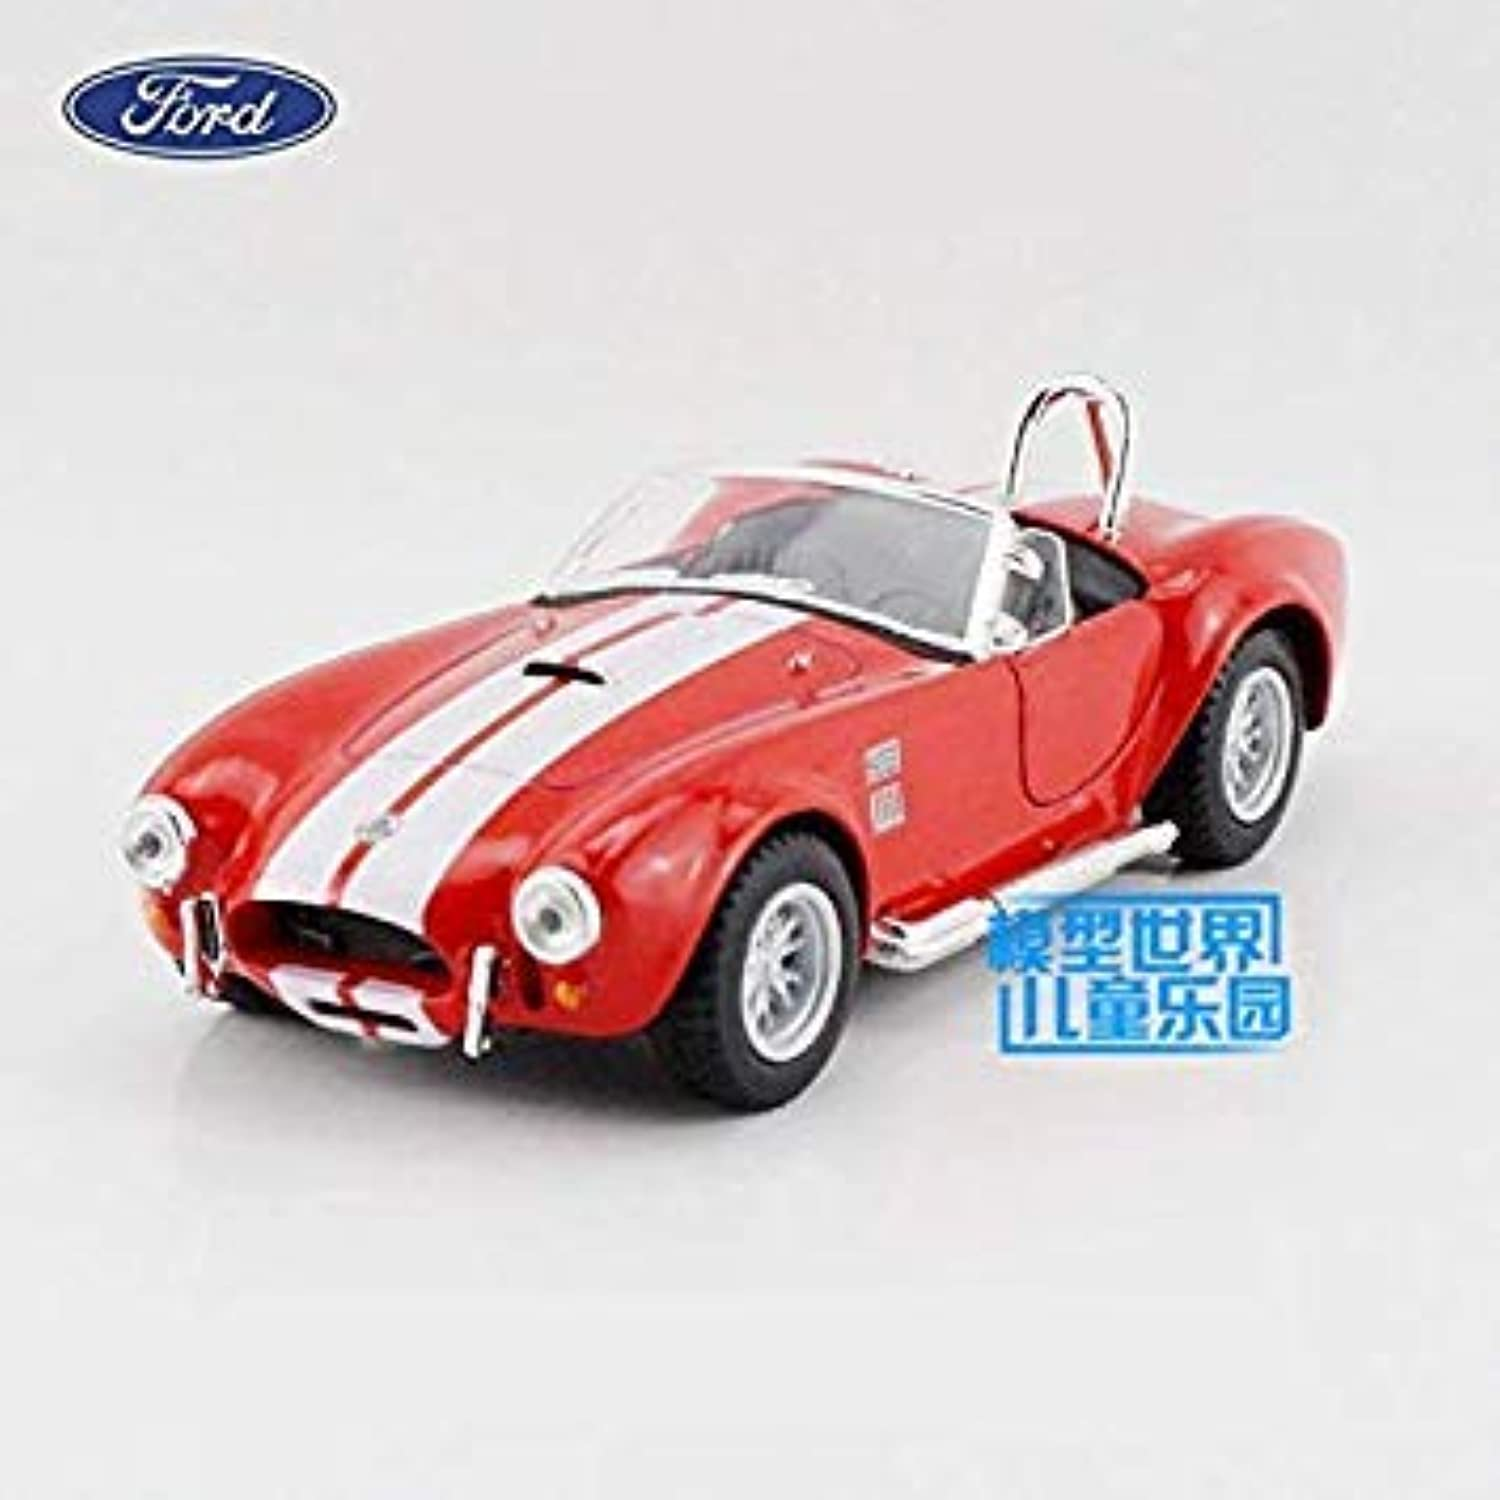 KiNSMART Toy Diecast Model 1 32 Scale 1965 Shelby Cobra 427 S C Pull Back Car Classical Collection Gift for Kid Red